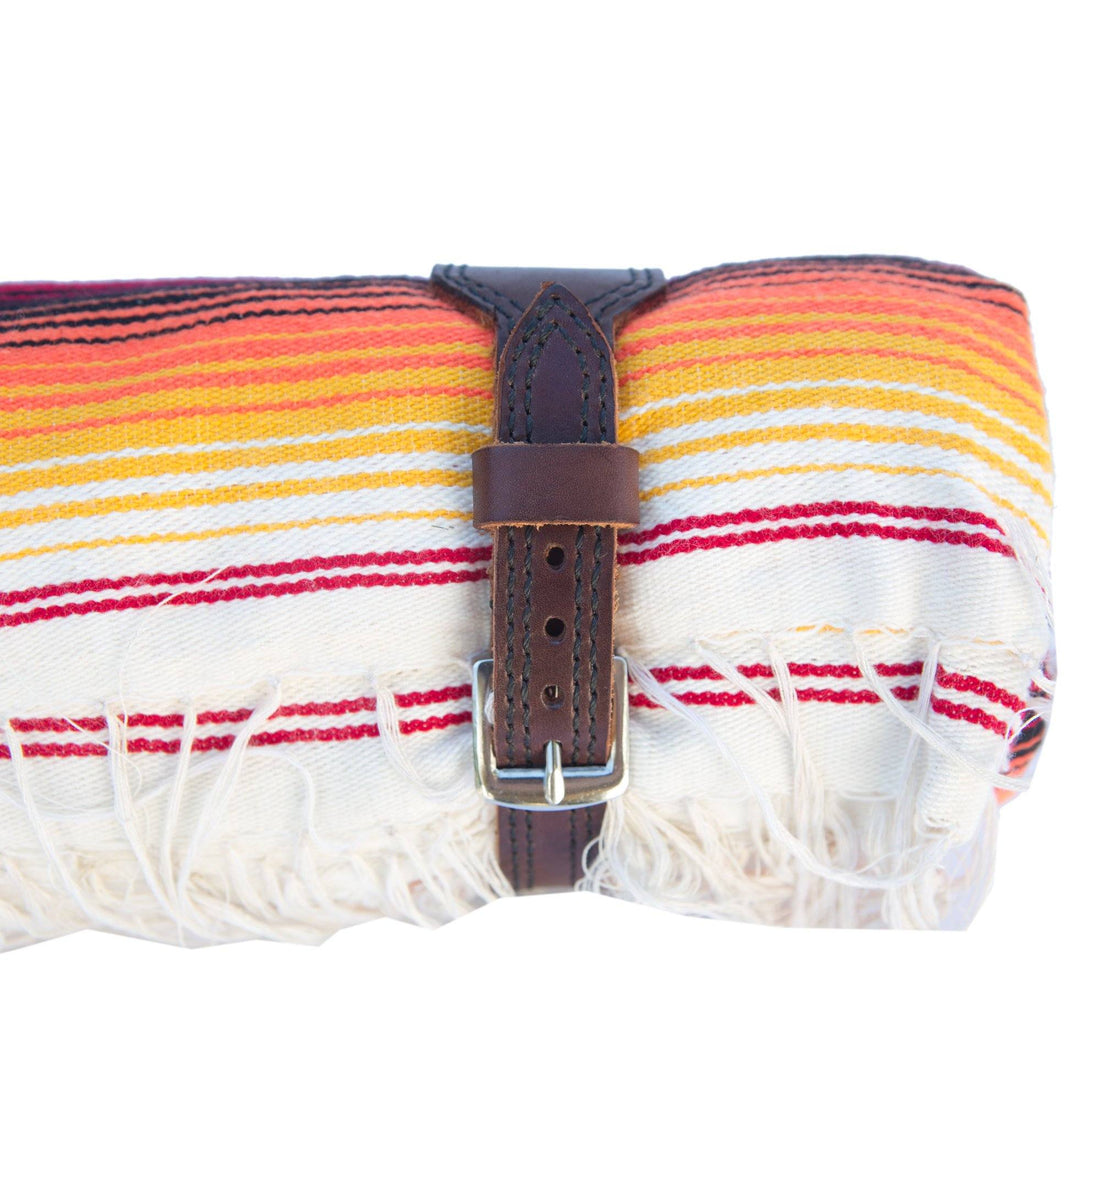 Vintage Serape Blanket with Custom made harness - Vintage - Iron and Resin